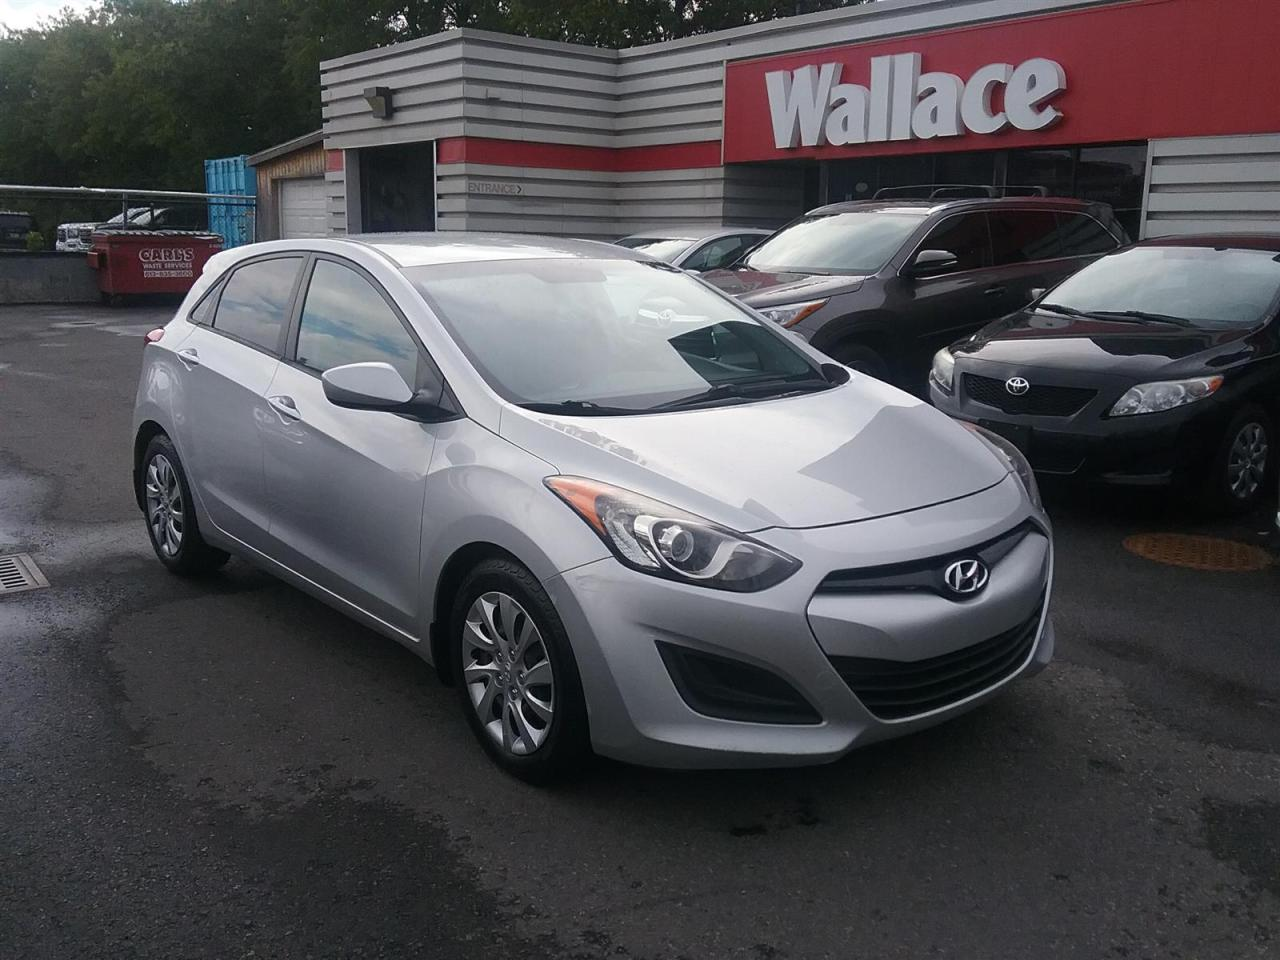 used 2013 hyundai elantra gt heated seats bluetooth for sale in ottawa, ontario carpages.ca